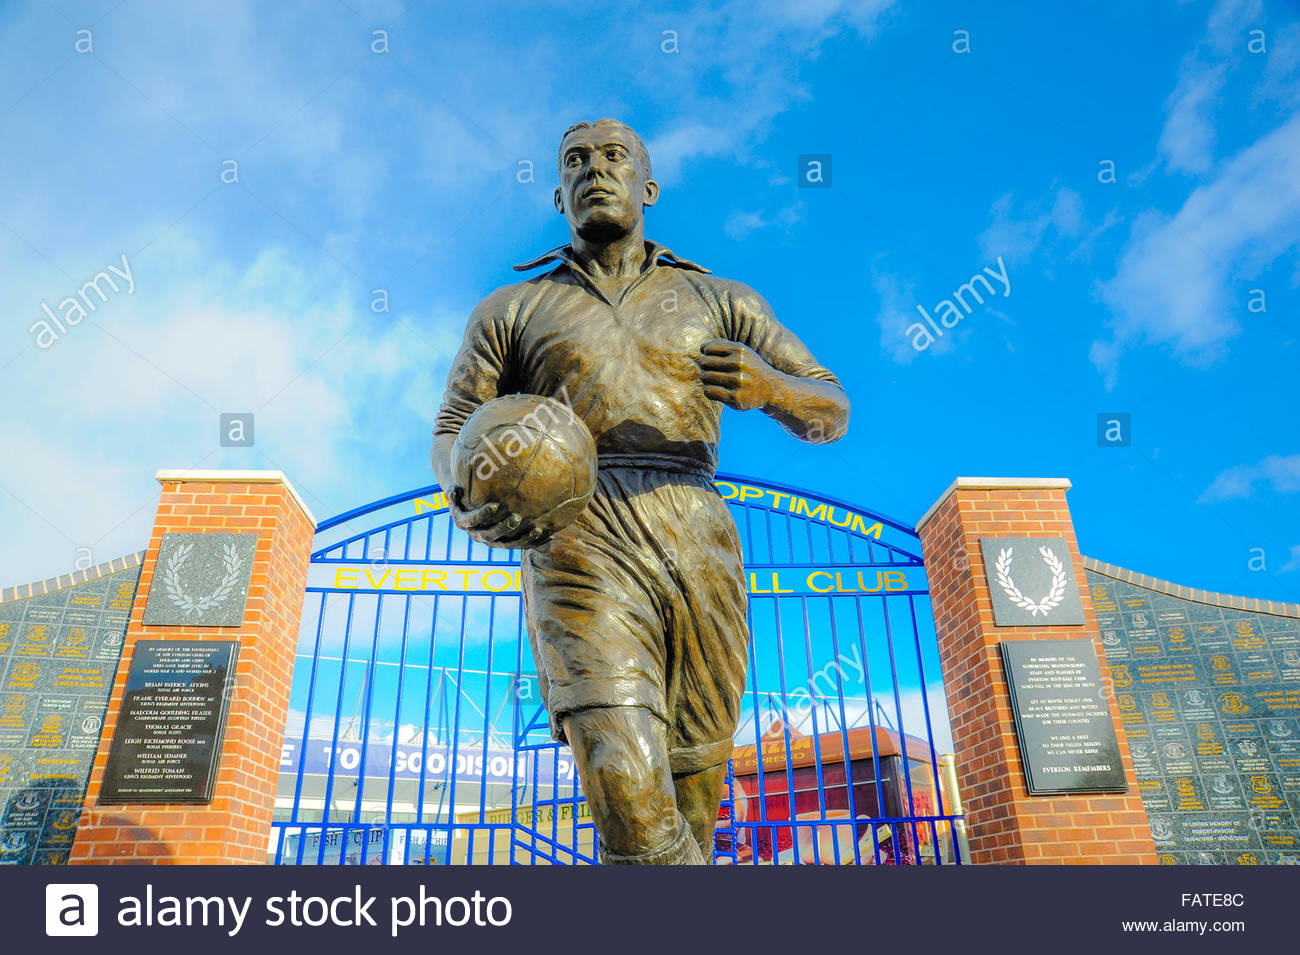 View of the statue of William Ralph Dixie Dean & EFC gates